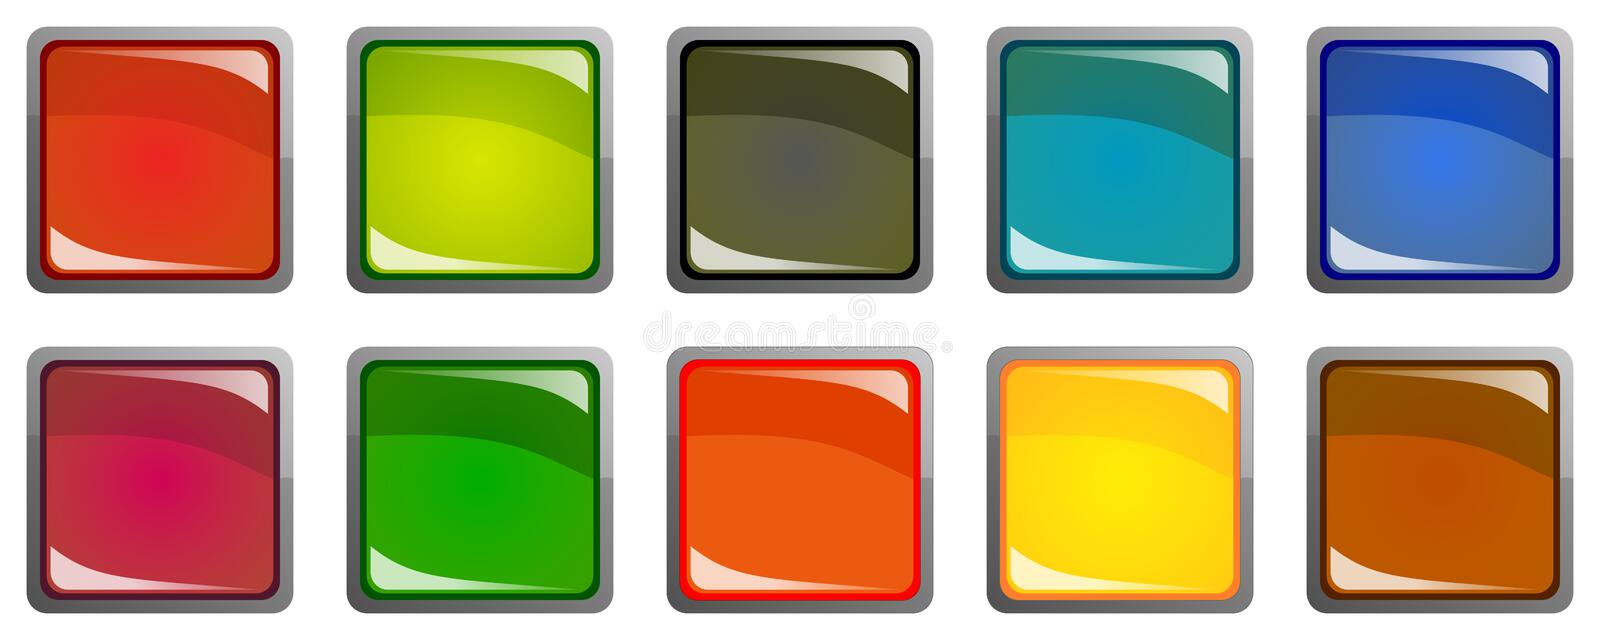 Set of colorful 3d buttons stock illustration